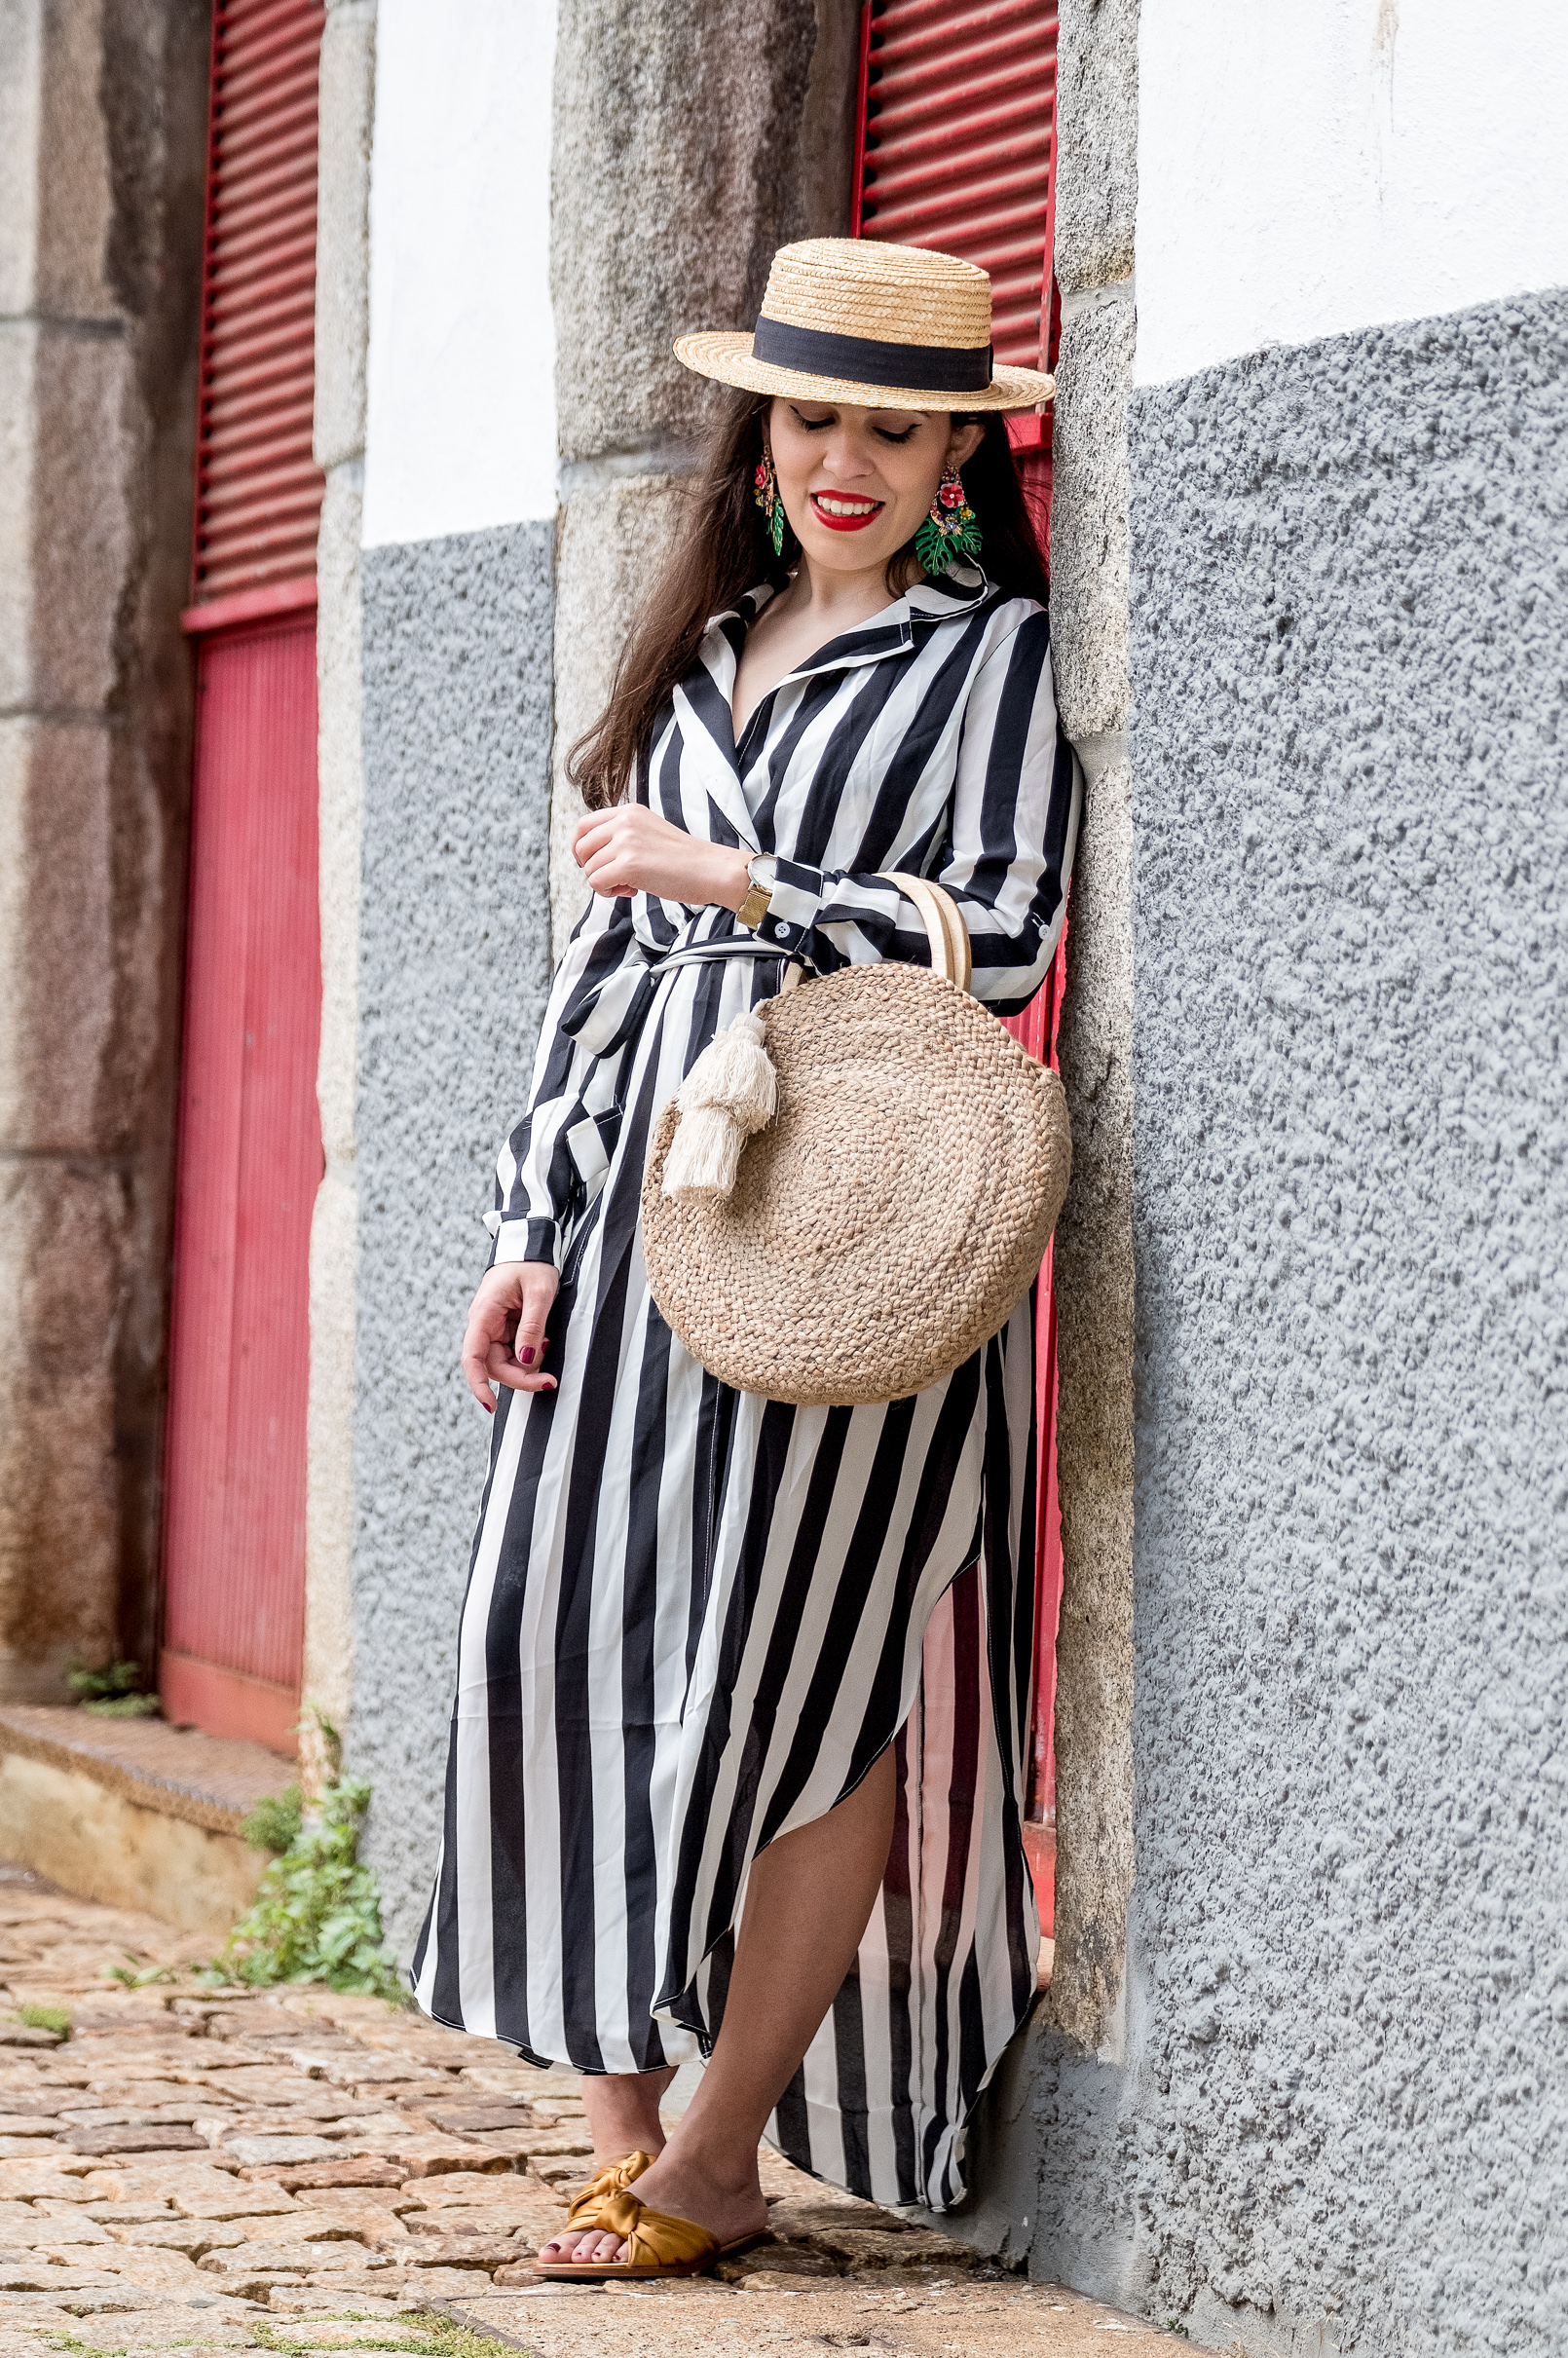 Le Fashionaire stripes dark blue white maxi shein dress satin dark yellow slides green leaf flowers bold earrings zara straw round wood zara bag 0497 EN stripes dark blue white maxi shein dress satin dark yellow slides green leaf flowers bold earrings zara straw round wood zara bag 0497 EN